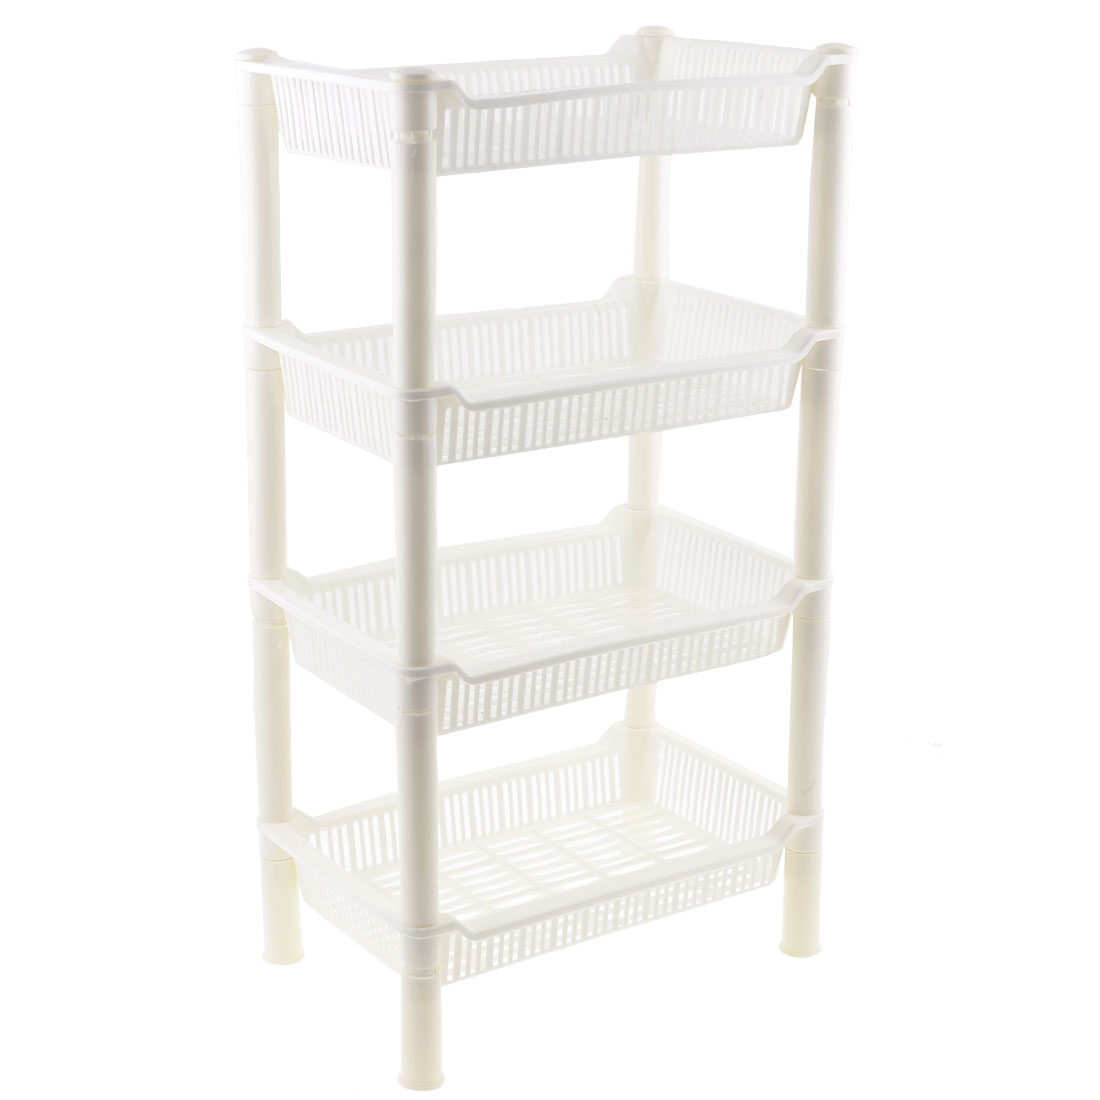 50cm High Detachable Rectangular 4 Layers White Plastic Mini Storage Shelf Rack